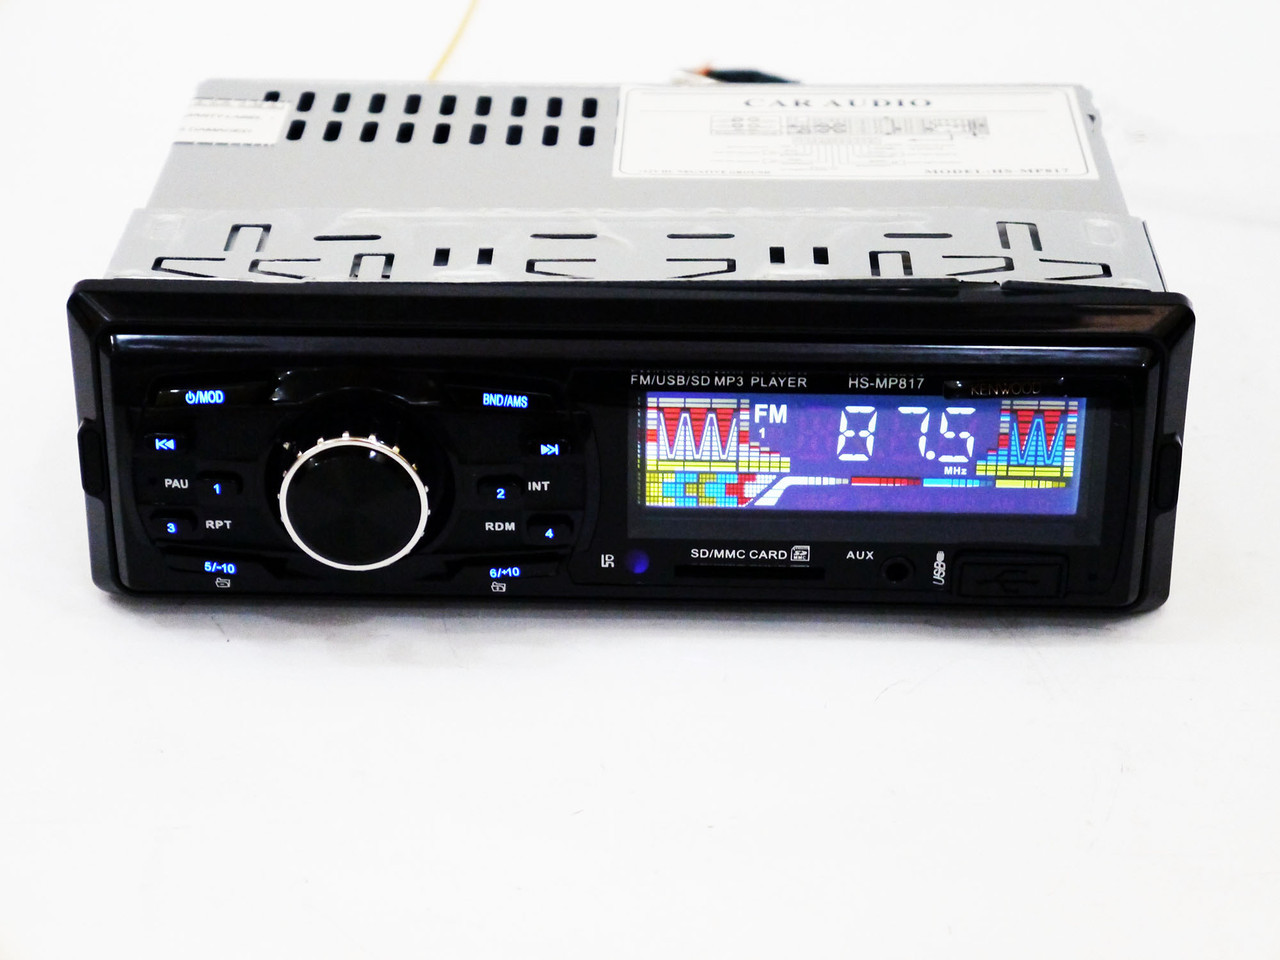 Автомагнитола Kenwood HS-MP817 - MP3 Player, FM, USB, SD, AUX